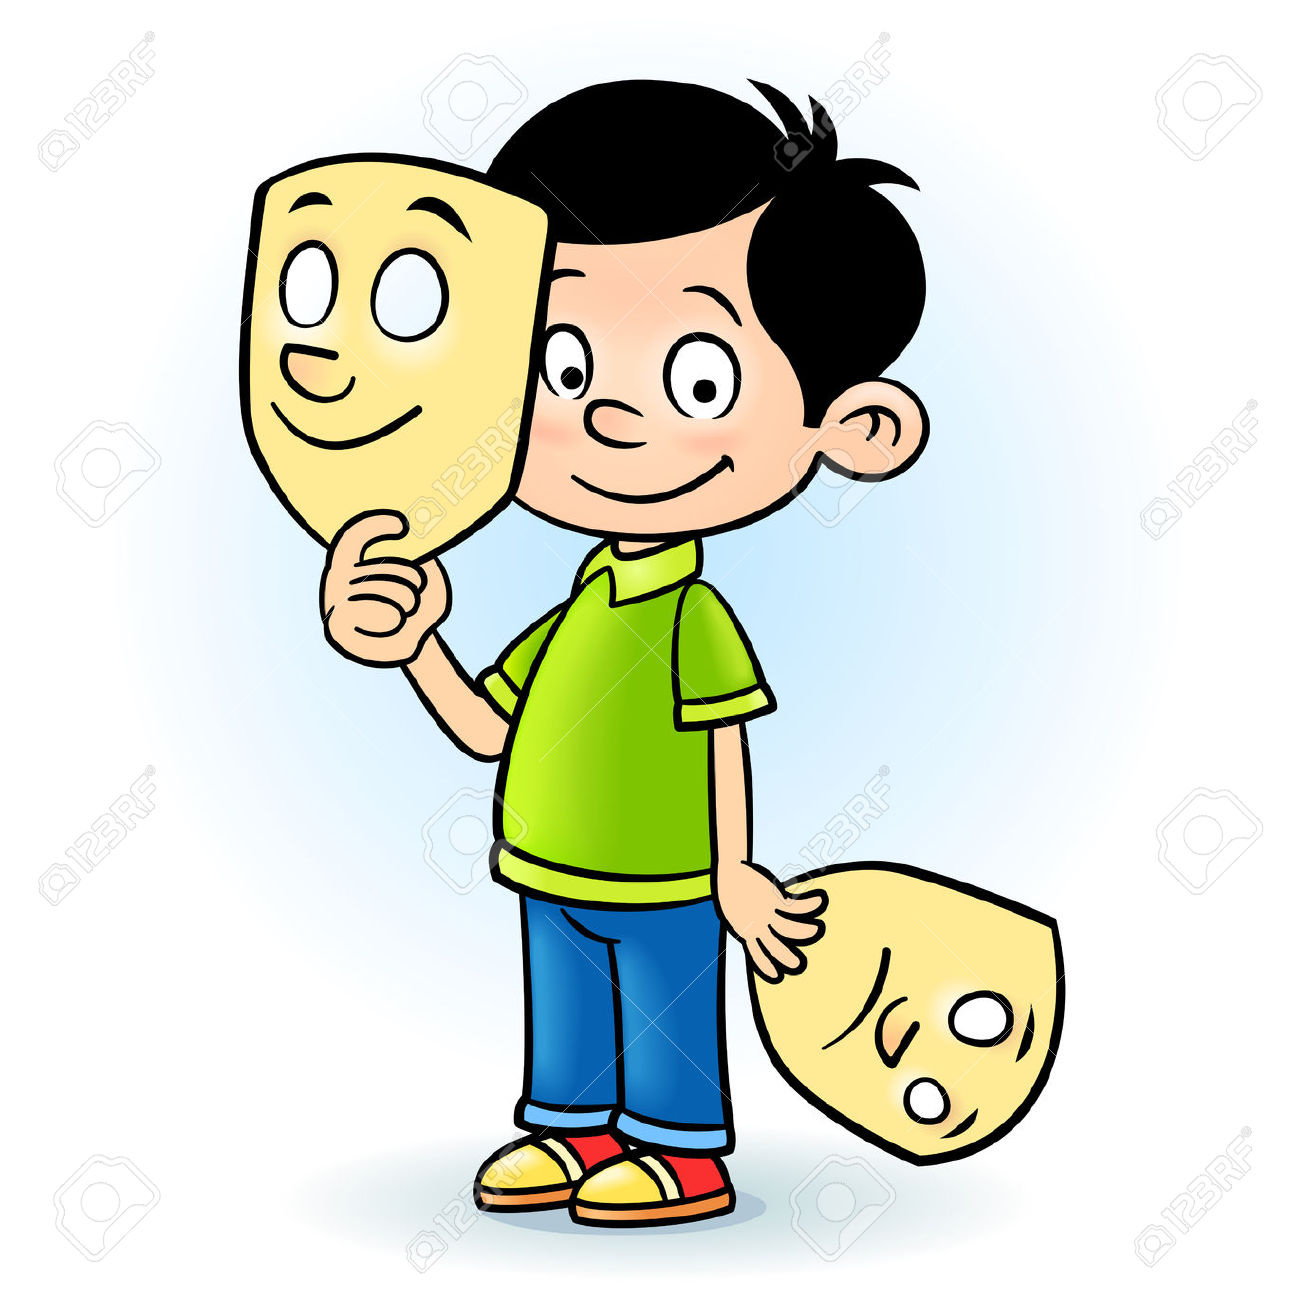 Actor Clipart & Actor Clip Art Images.